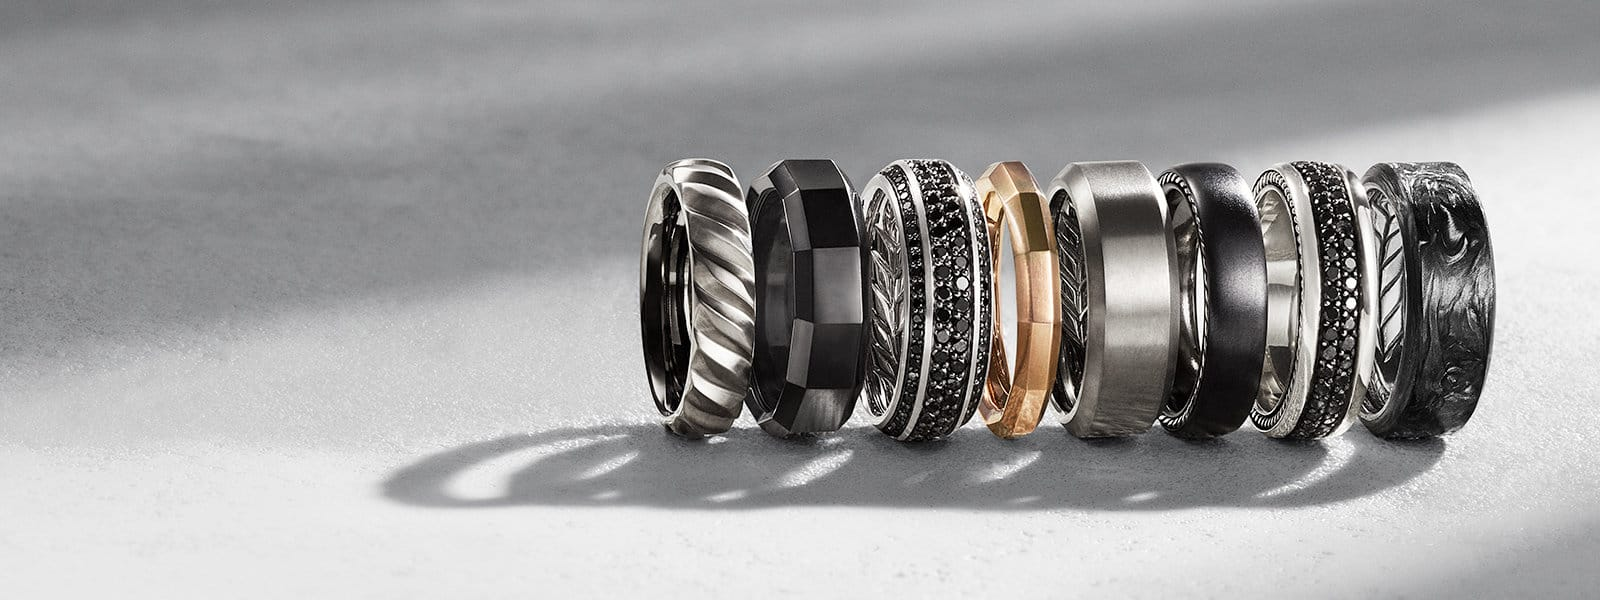 A row of David Yurman Men's The Cable Collection, Faceted, Beveled and Streamline men's bands in a mix of grey or black titanium, sterling silver, or 18K rose gold with or without black diamonds or forged carbon, on a textured white stone with long shadows.